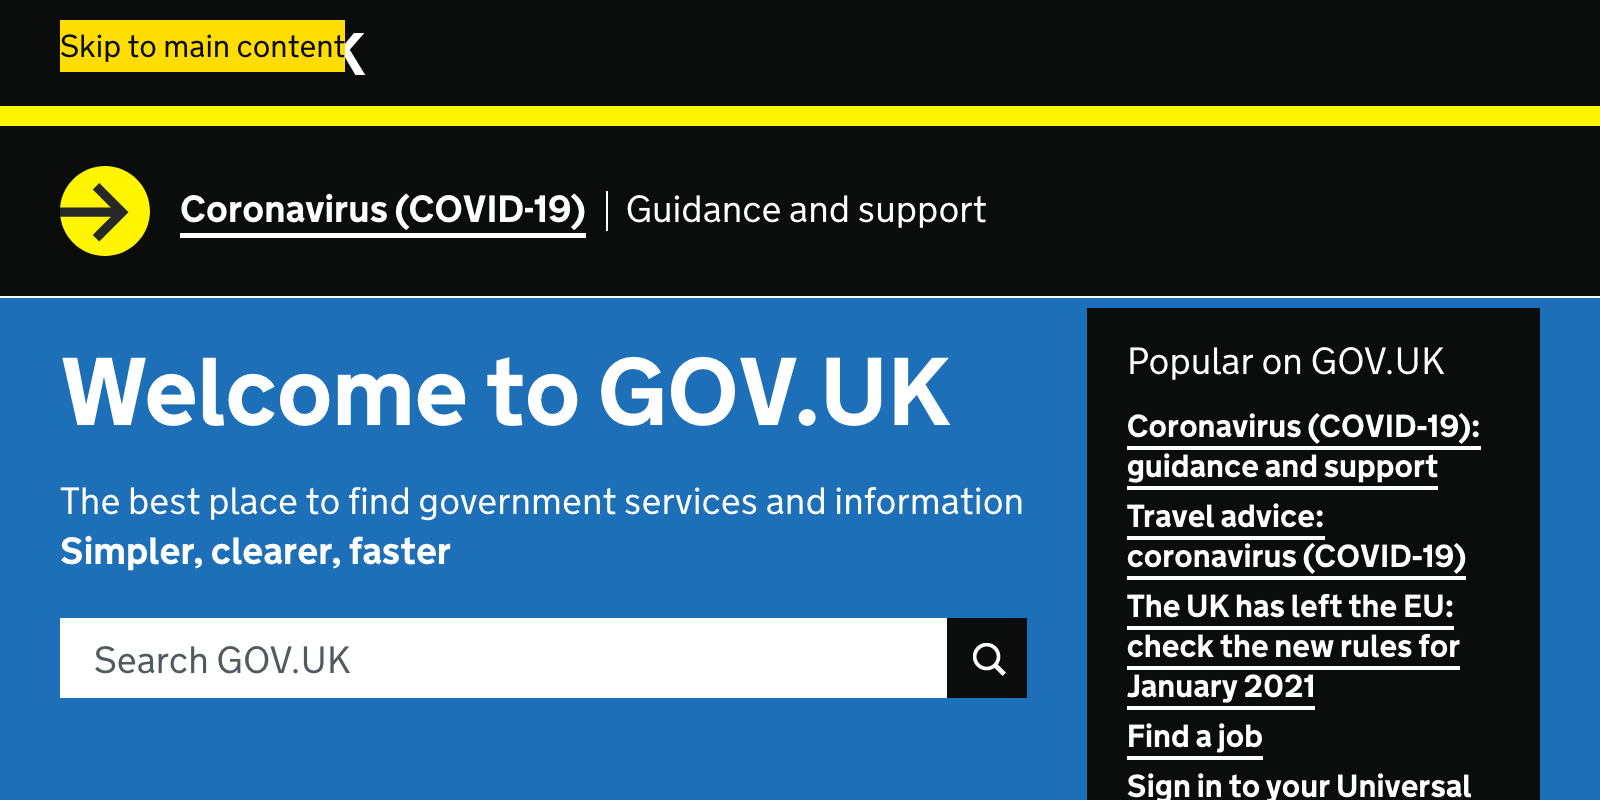 An example of a skip link, with the text 'Skip to main content' in the header of the GOV.UK homepage.